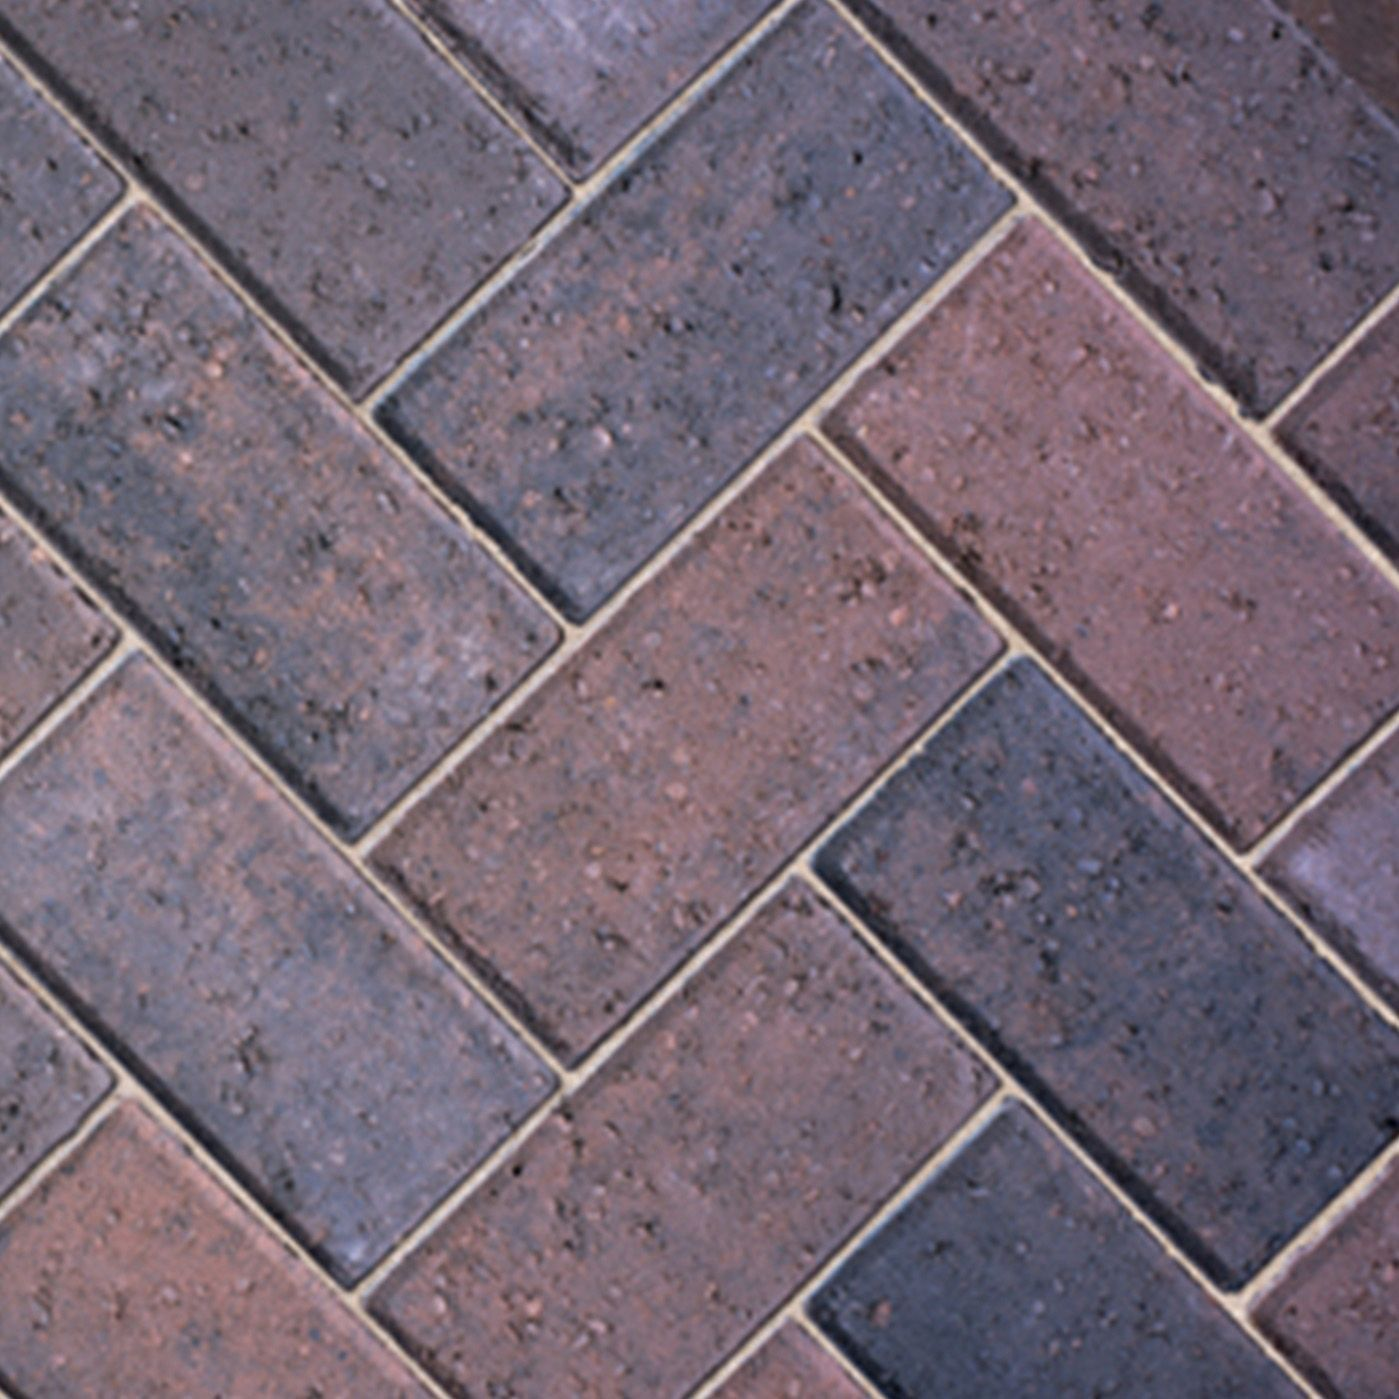 burnt oker europa block paving (l)200mm (w)100mm, pack RVVWCNR